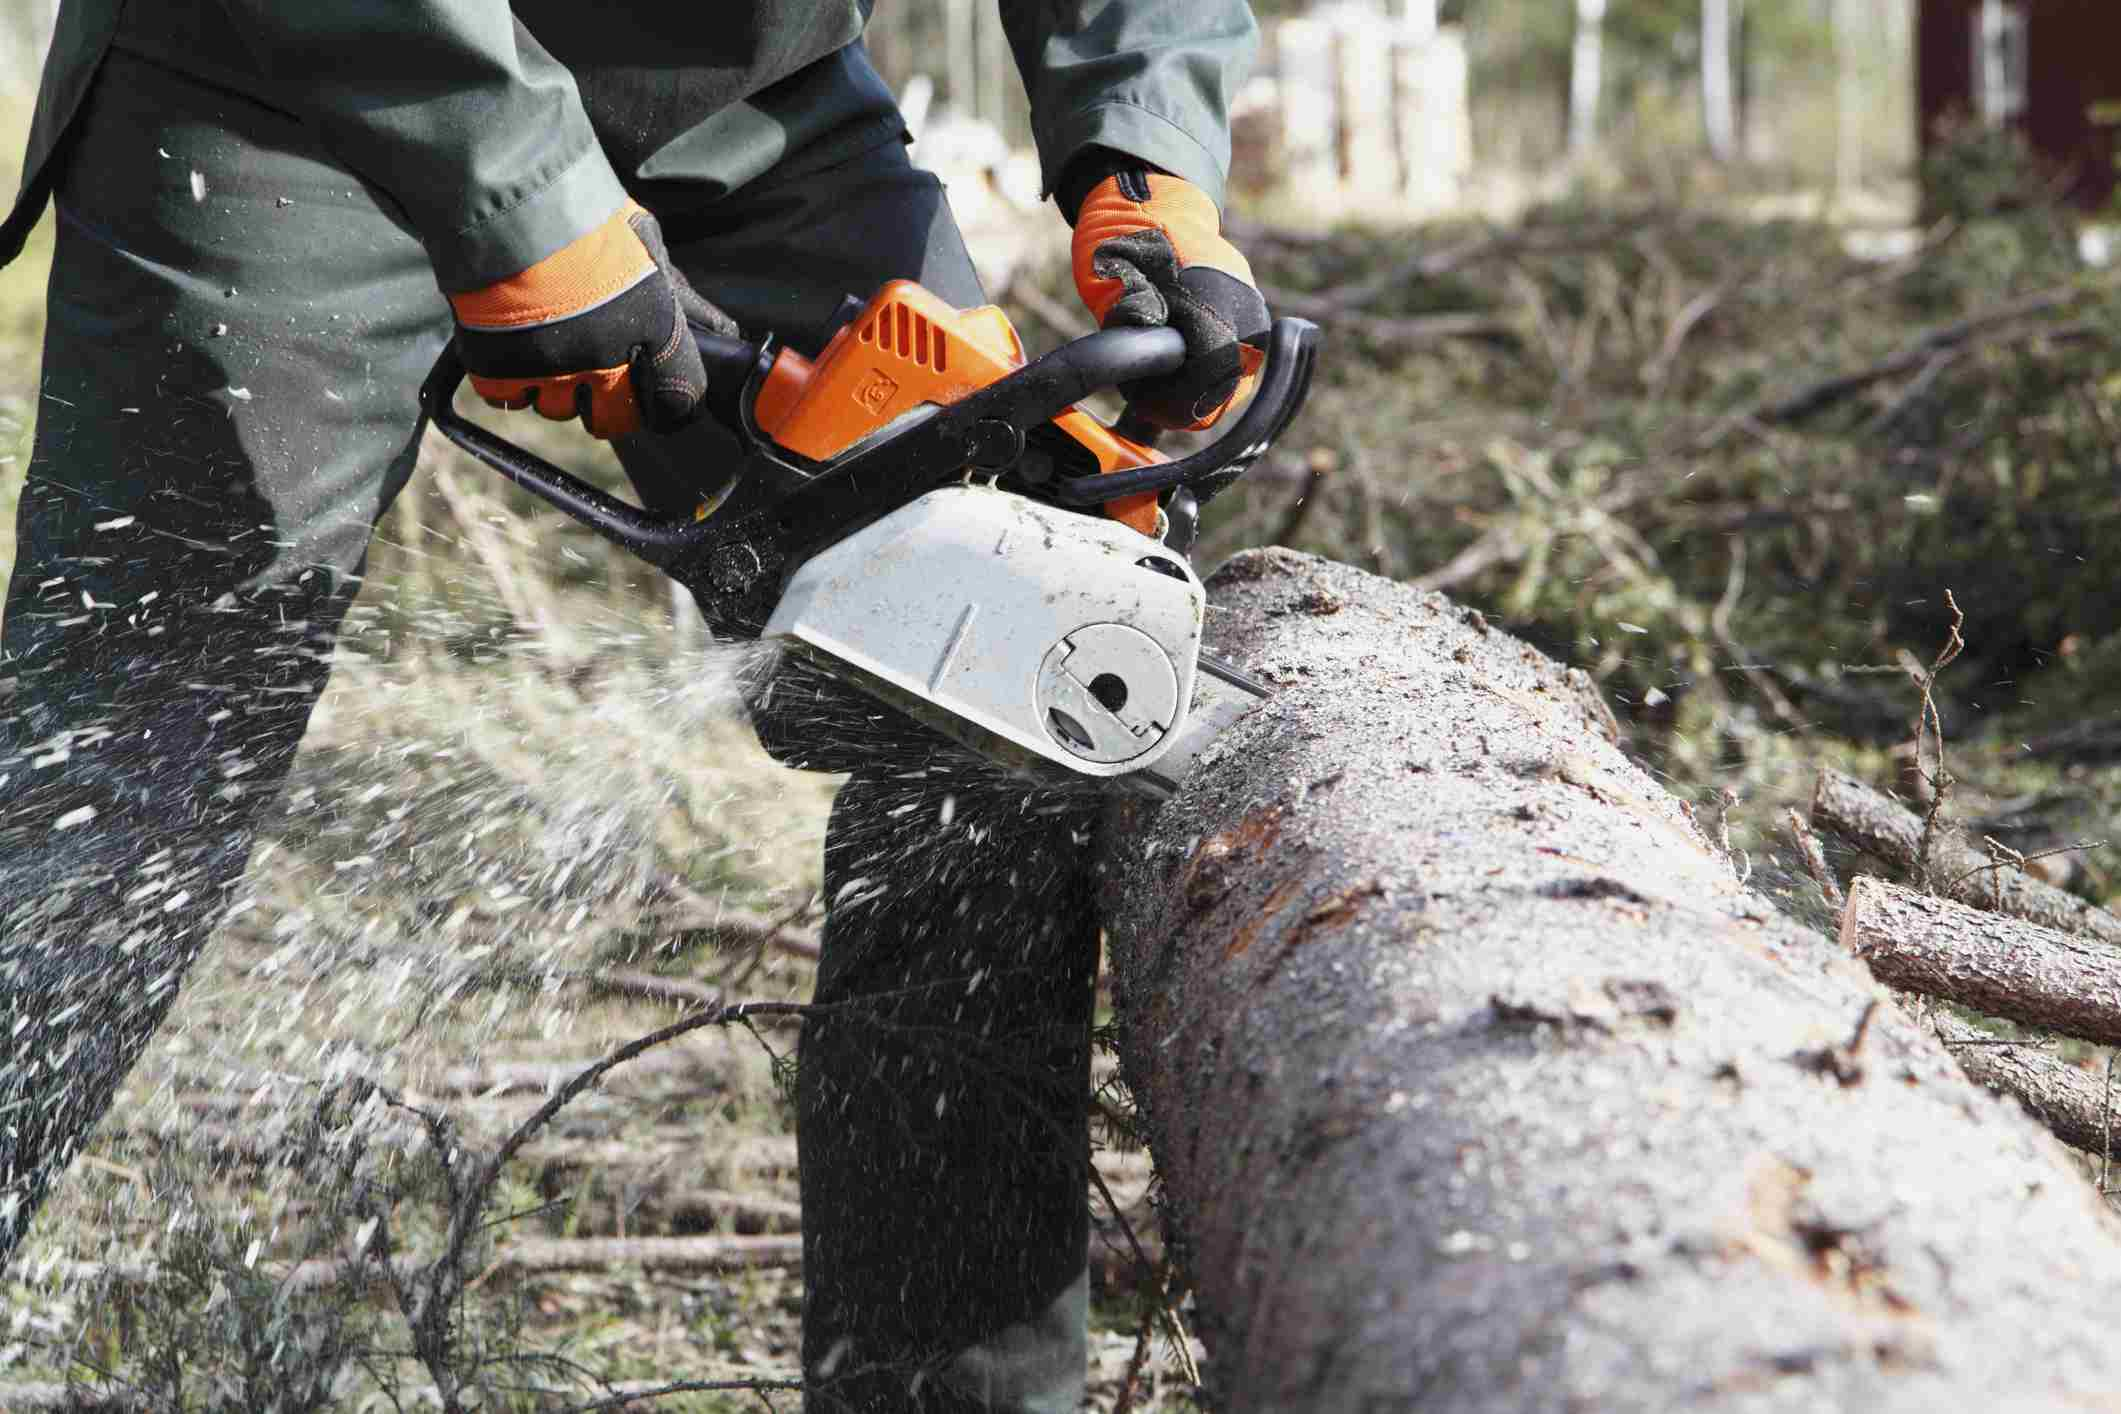 The Best Tree Trimming Tools For Landscaping For 2019